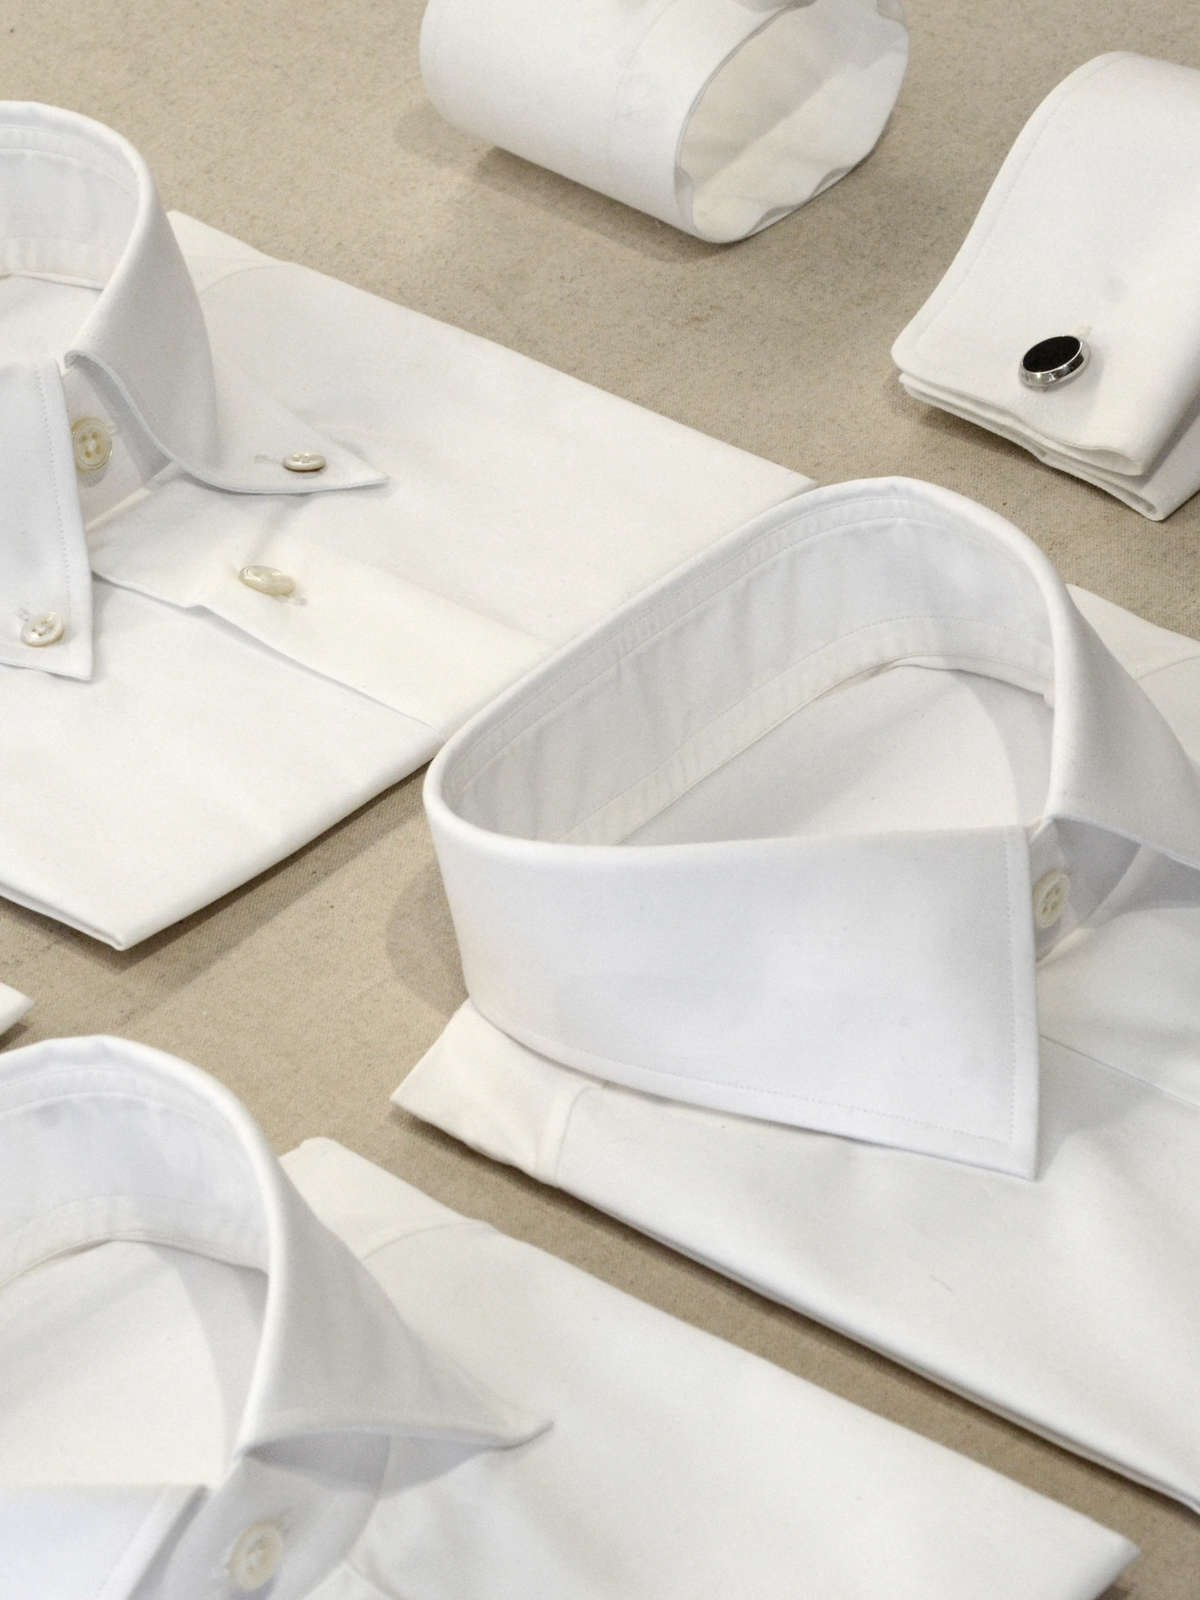 Bespoke shirts, Australian mother of pearl buttons, Italian cotton shirt, luxury shirt, luxury bespoke, white shirts, bespoke shirt collars, bespoke shirt cuffs, shirt collars, shirt cuffs, a range of white shirts collars and cuffs